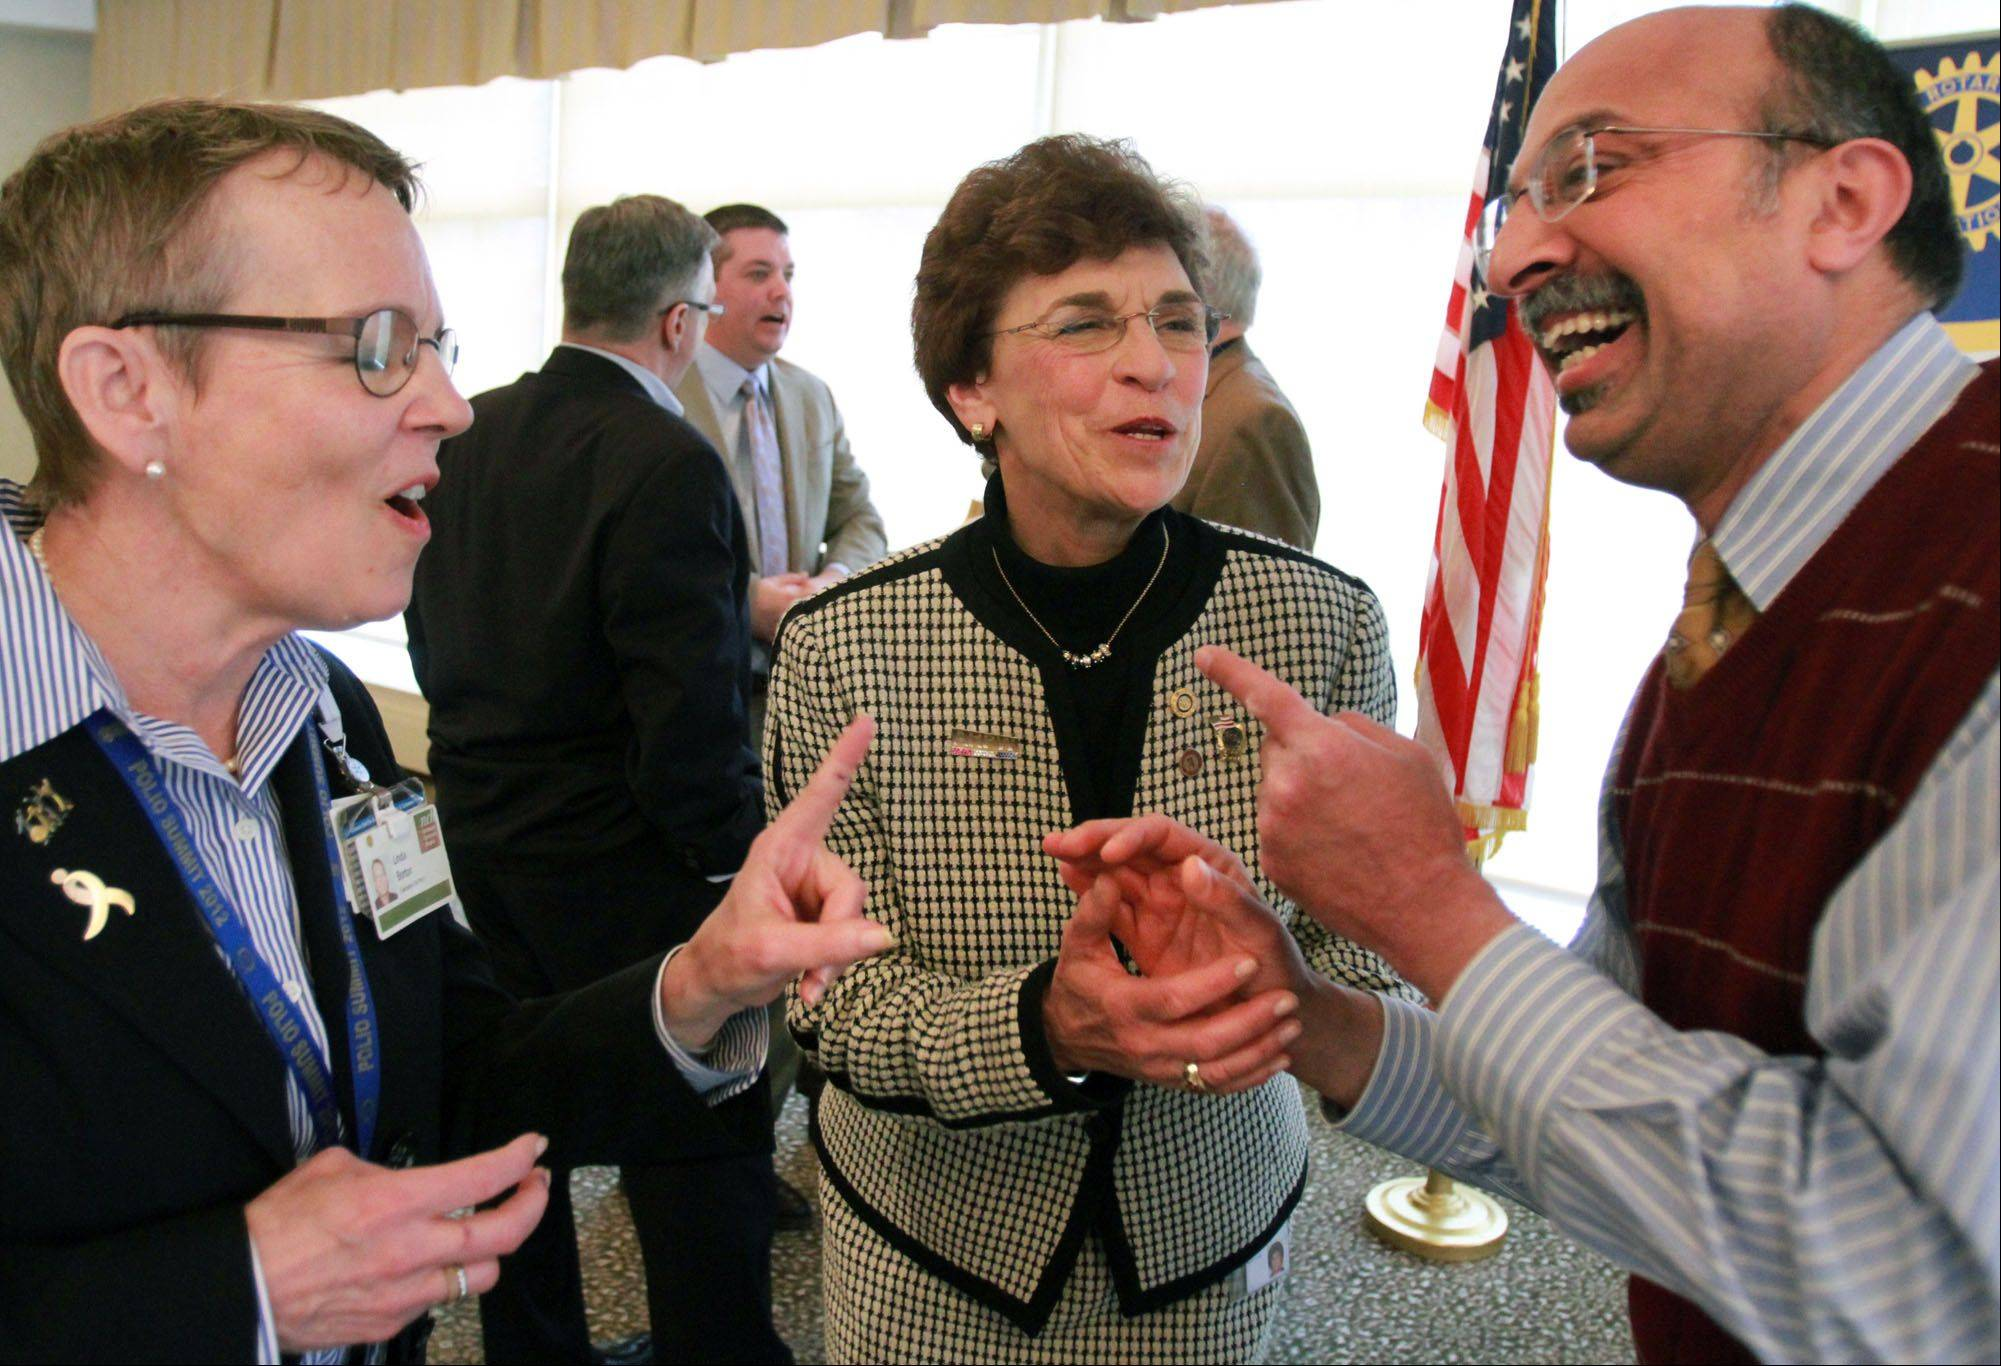 Arlington Heights Mayor Arlene Mulder, center, has a laugh with Linda Borton, Arlington Heights Rotary vice president, left, and Harry Vaswani of Arlington Heights.